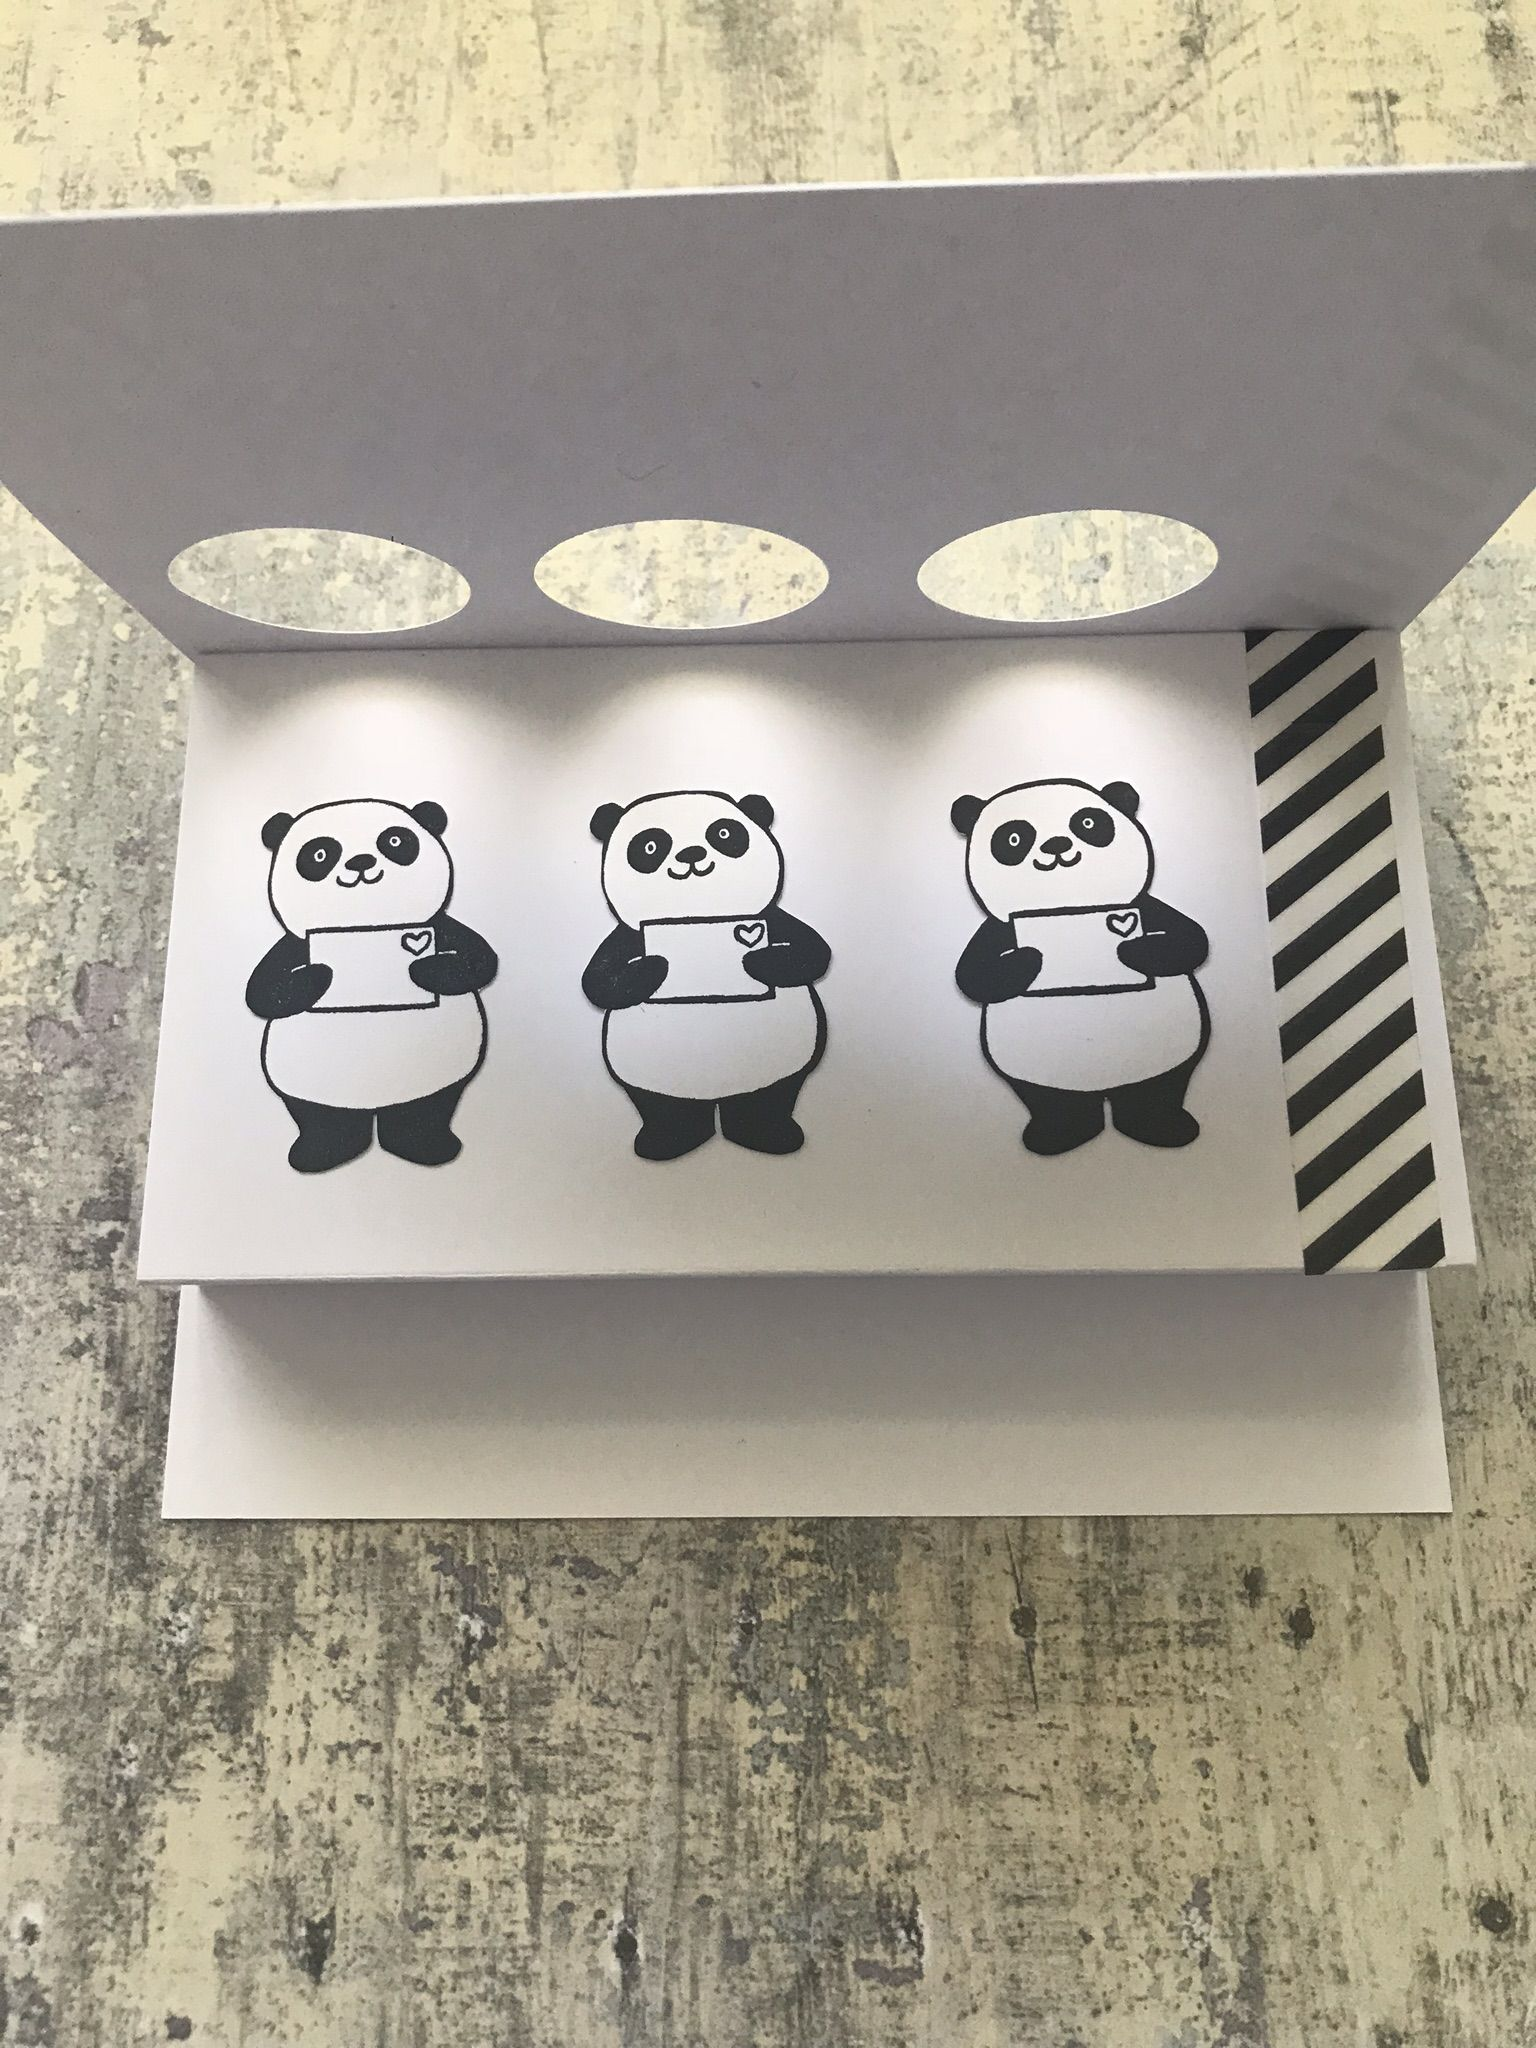 Stampin Up Party Panda Pop Up Window Card Stampinup Partypanda Panda Handmade Card Panda Card Pop Up Cards Stampin Up Party